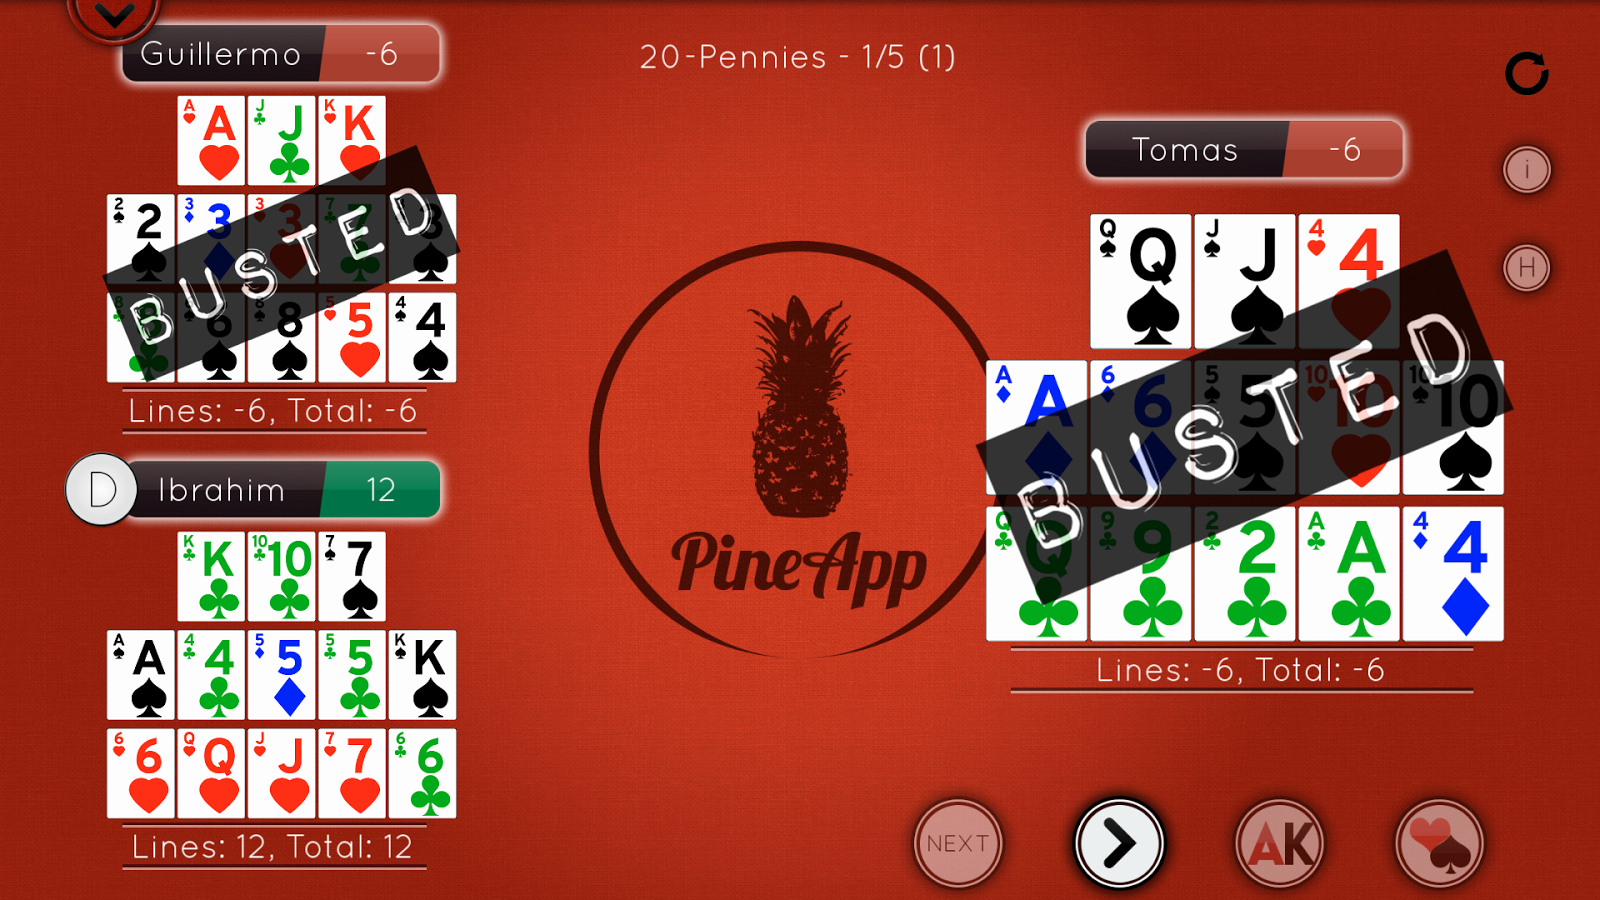 Abc poker app cheat